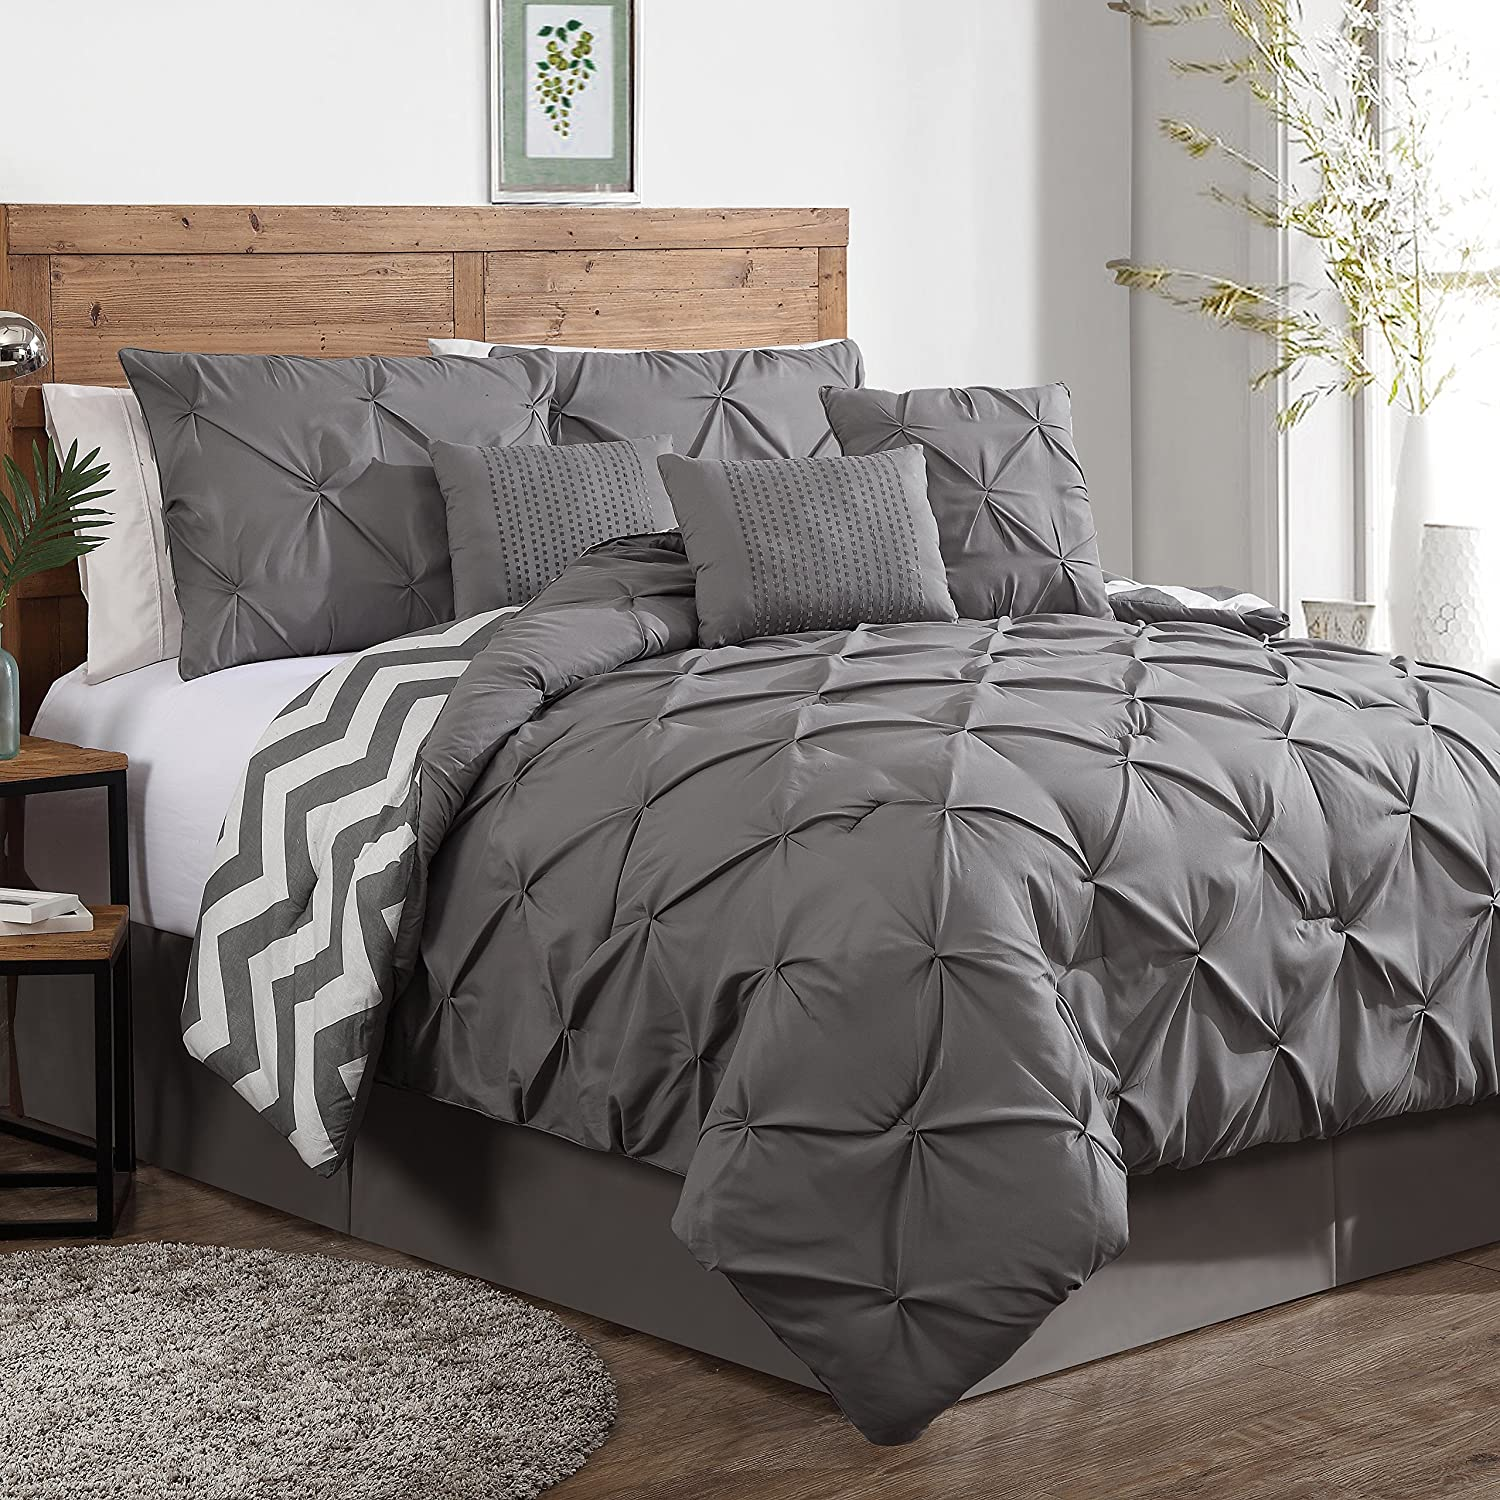 King Bedding Sets – Ease Bedding with Style